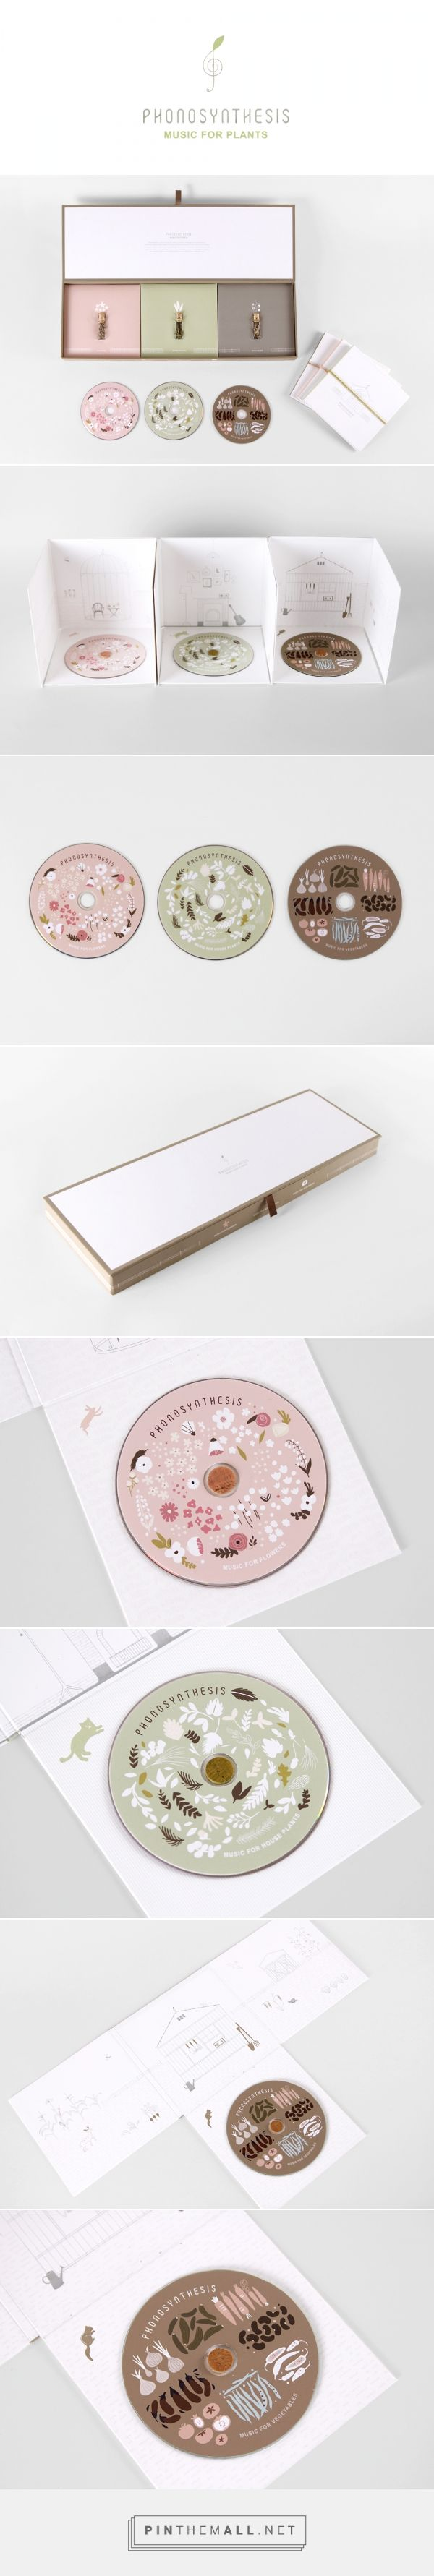 Phonosynthesis by Mirim Seo curated by packaging Diva PD. Clever packaging in this music for plants : )